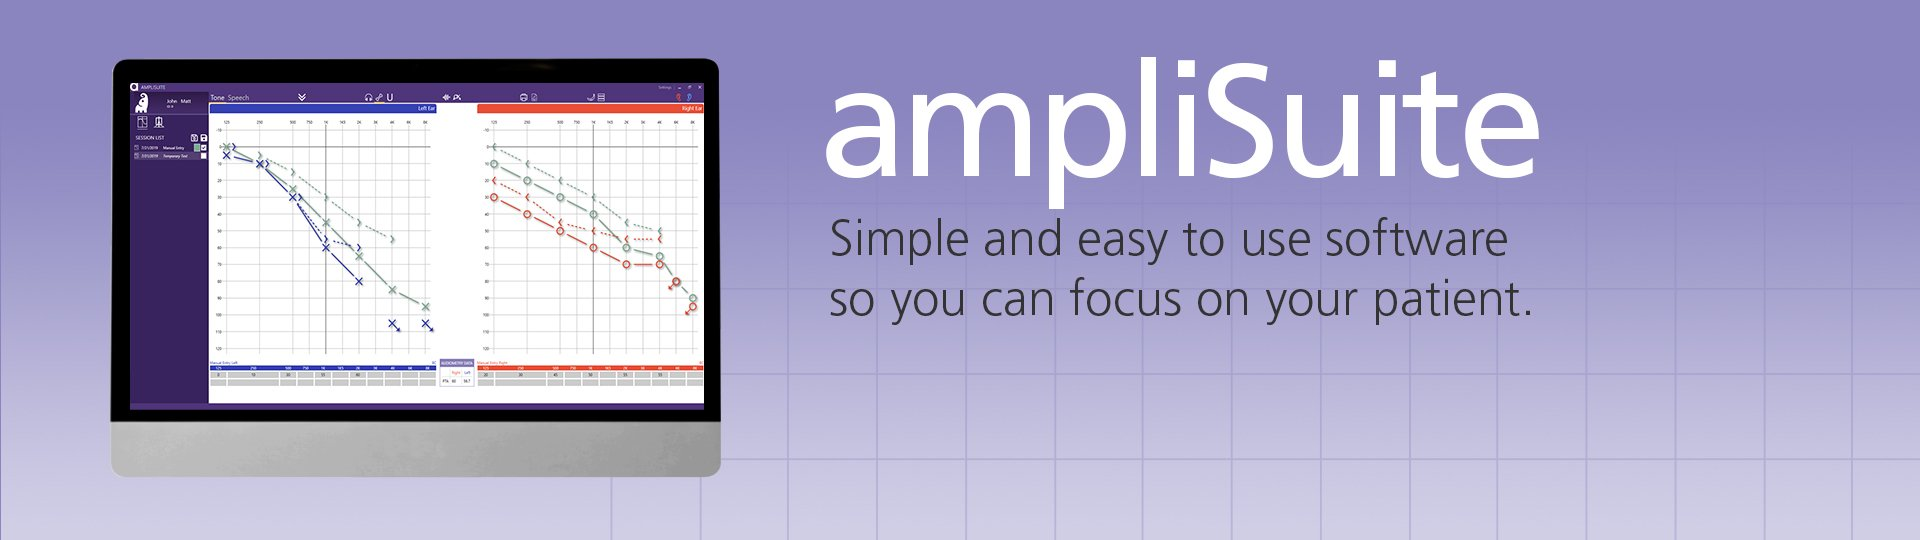 amplisuite-banner-new-software